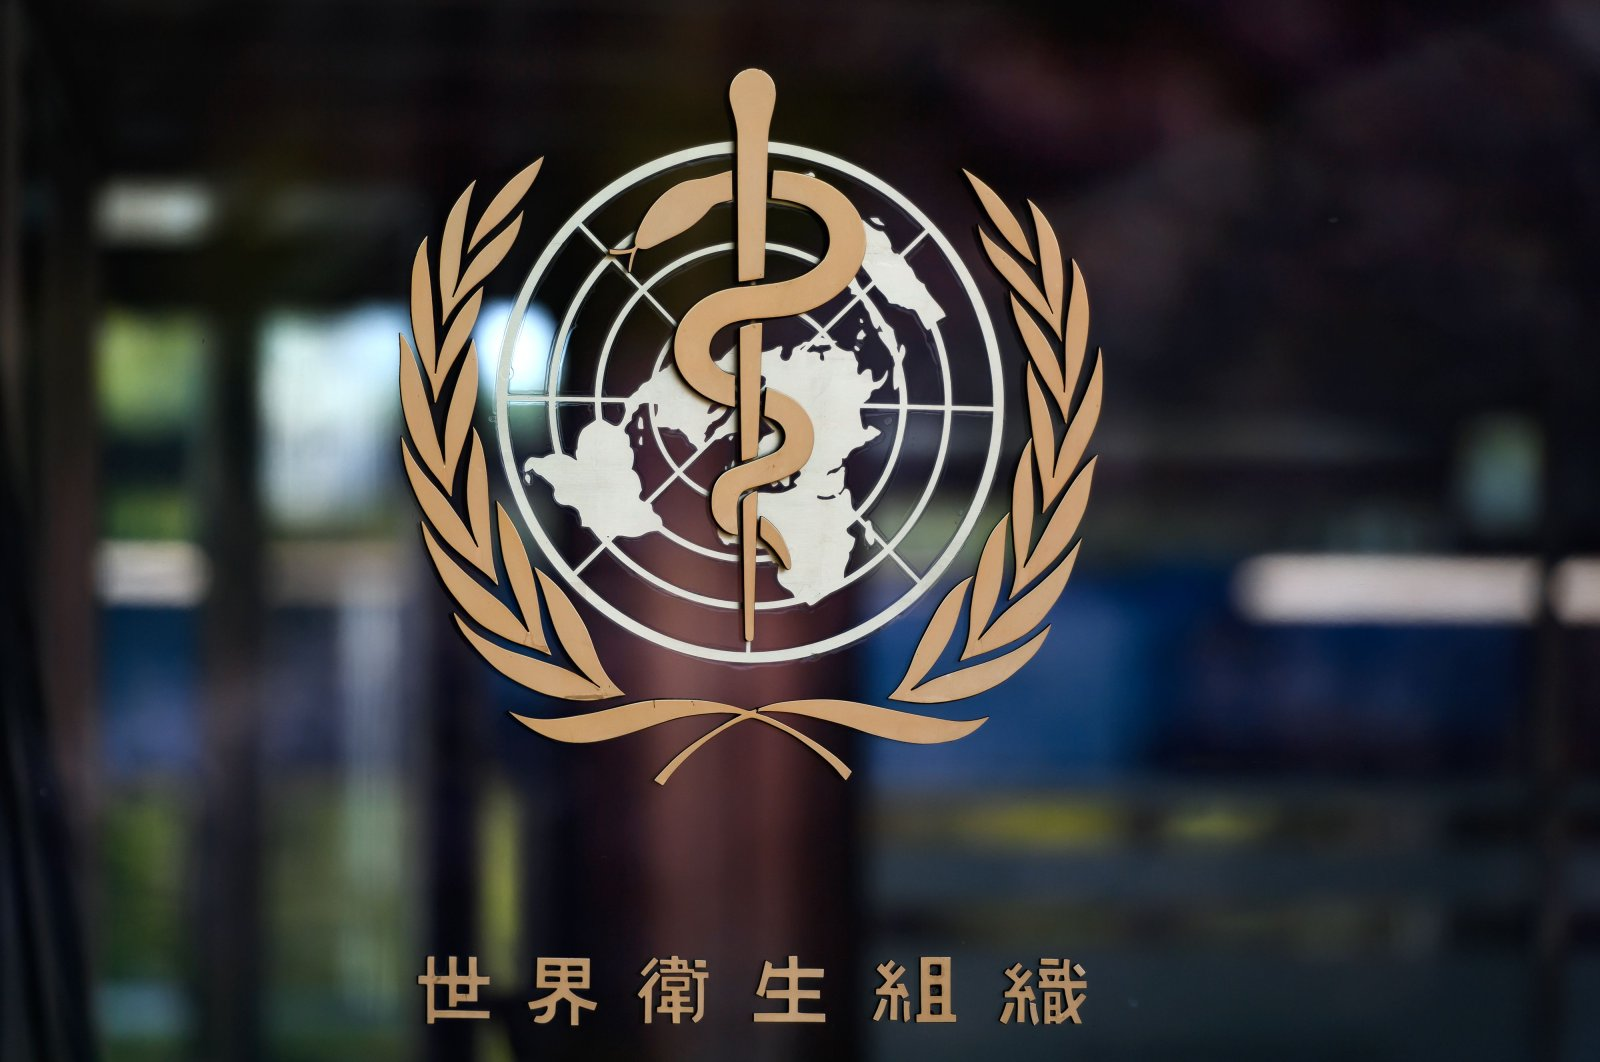 The logo of the World Health Organization (WHO) written in Chinese on the entrance of their headquarters in Geneva amid the COVID-19 outbreak, April 15, 2020. (AFP Photo)